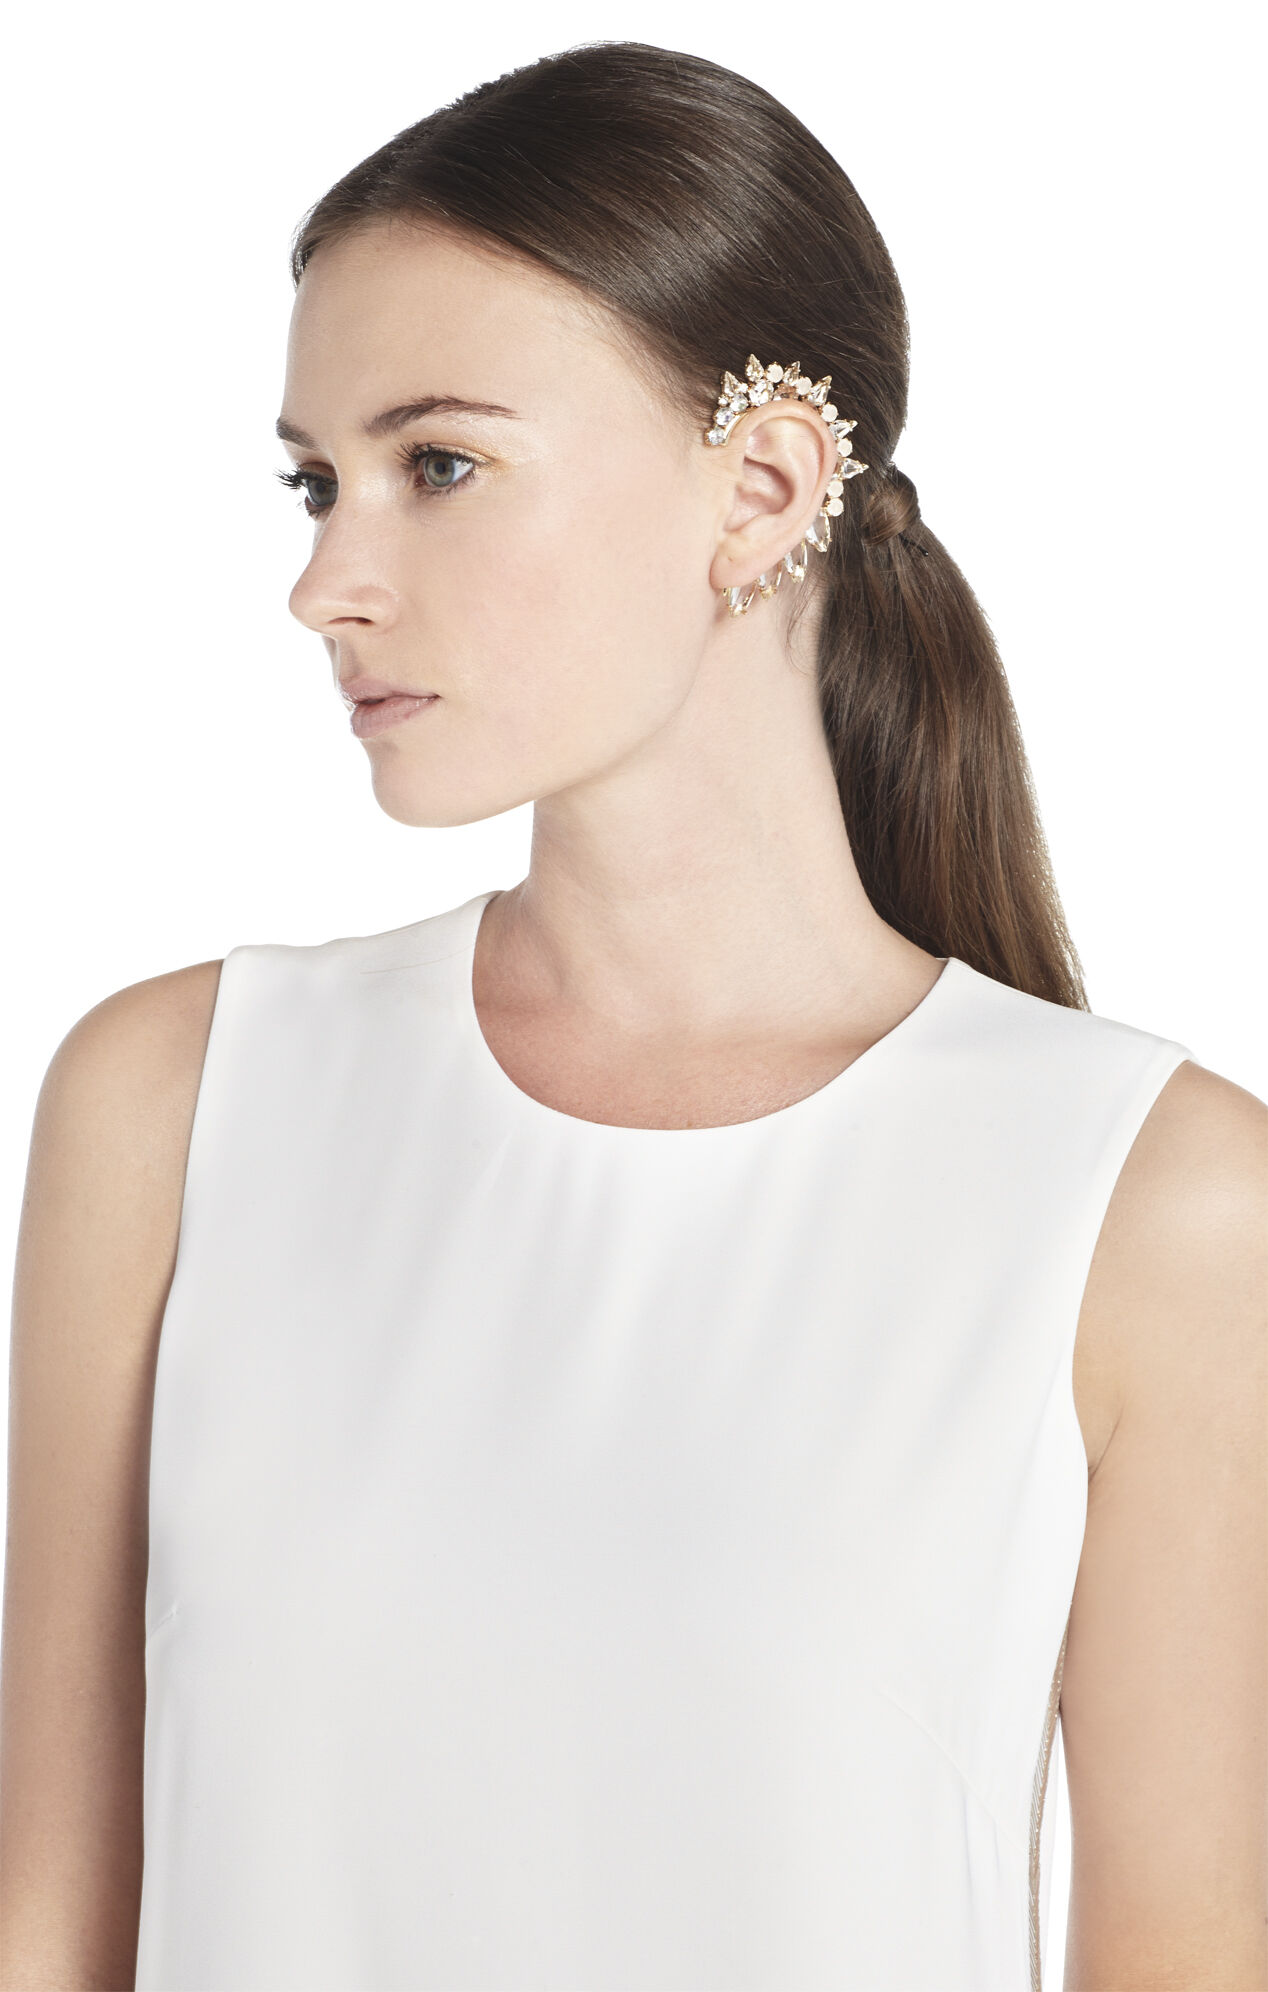 Jeweled Left Ear Cuff